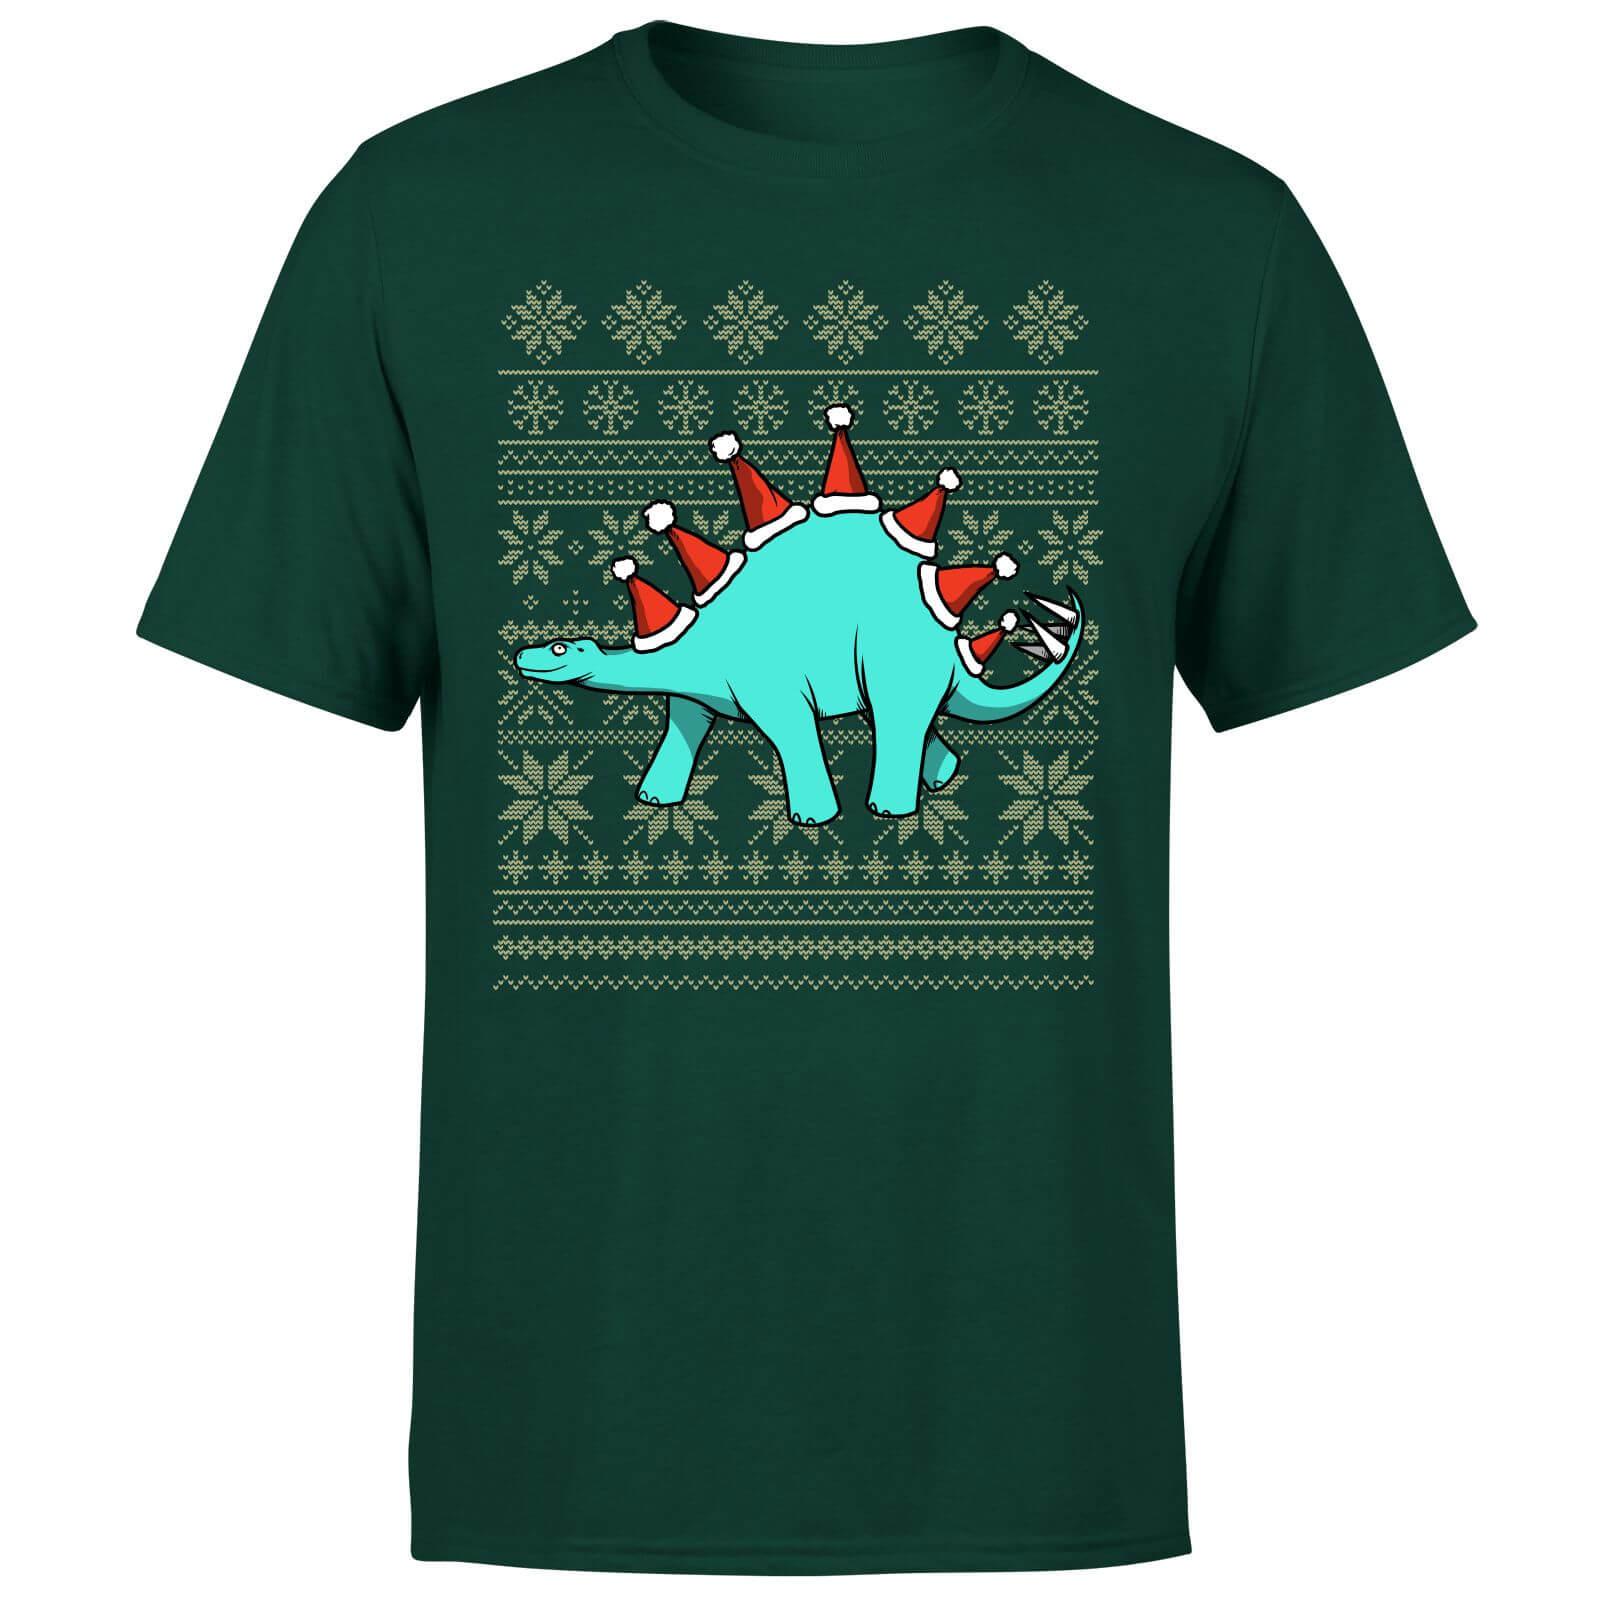 Stegosantahats T-Shirt - Forest Green